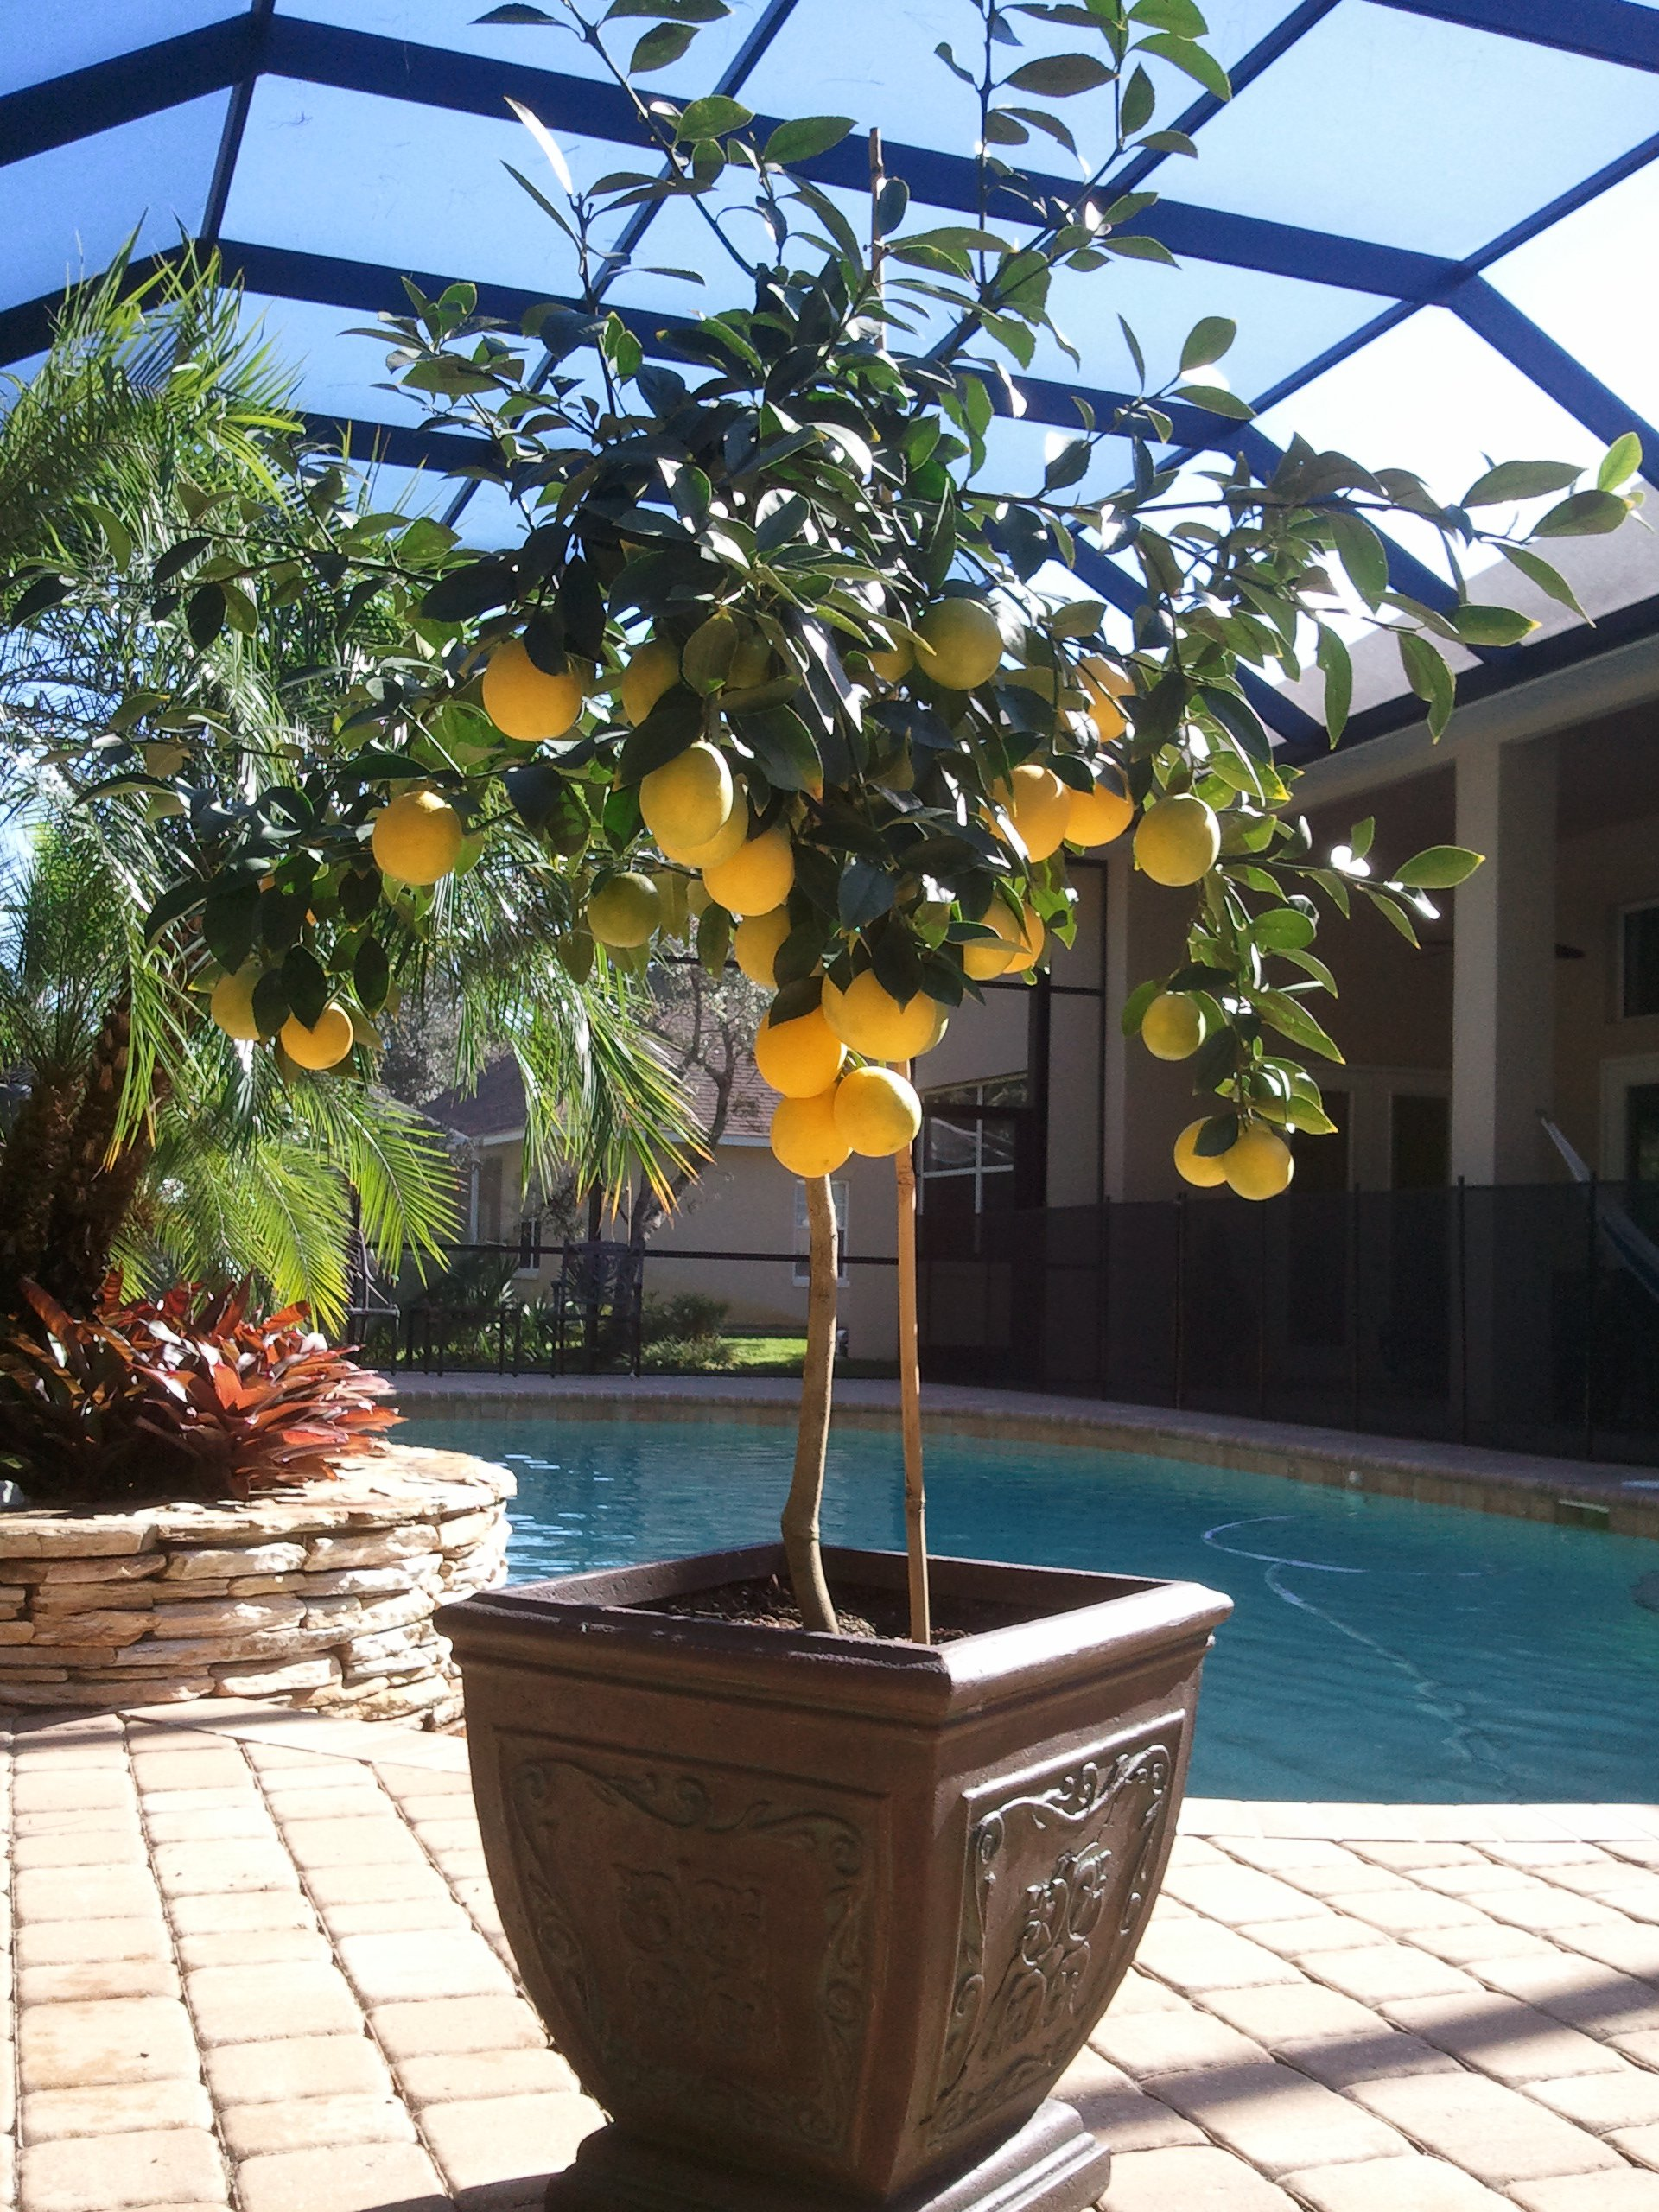 Brighter Blooms Improved Meyer Lemon Tree, up to 4 ft. tall, Get Fruit 1st Year, Dwarf Fruit Tree with Sweet Lemons, Indoor/Outdoor Live Potted Citrus Tree